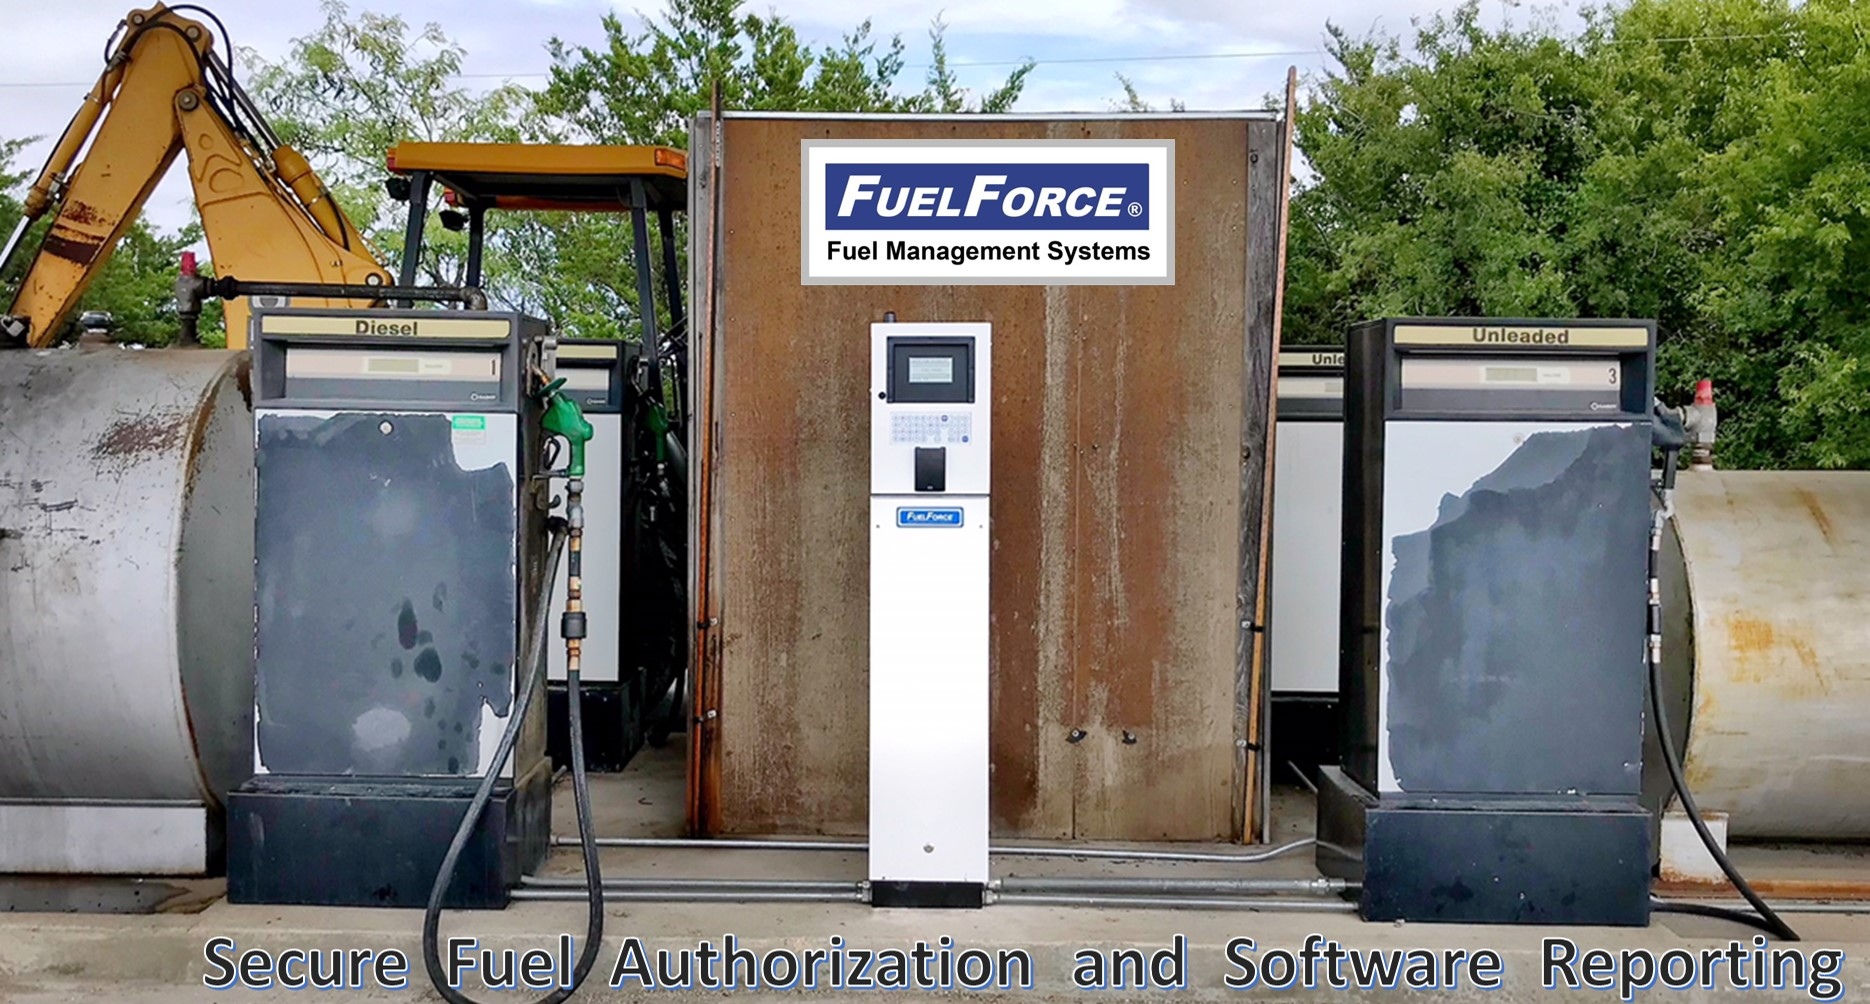 FuelForce 814K HID Proximity Key and Badge Reader Wireless Fuel Management System.jpg